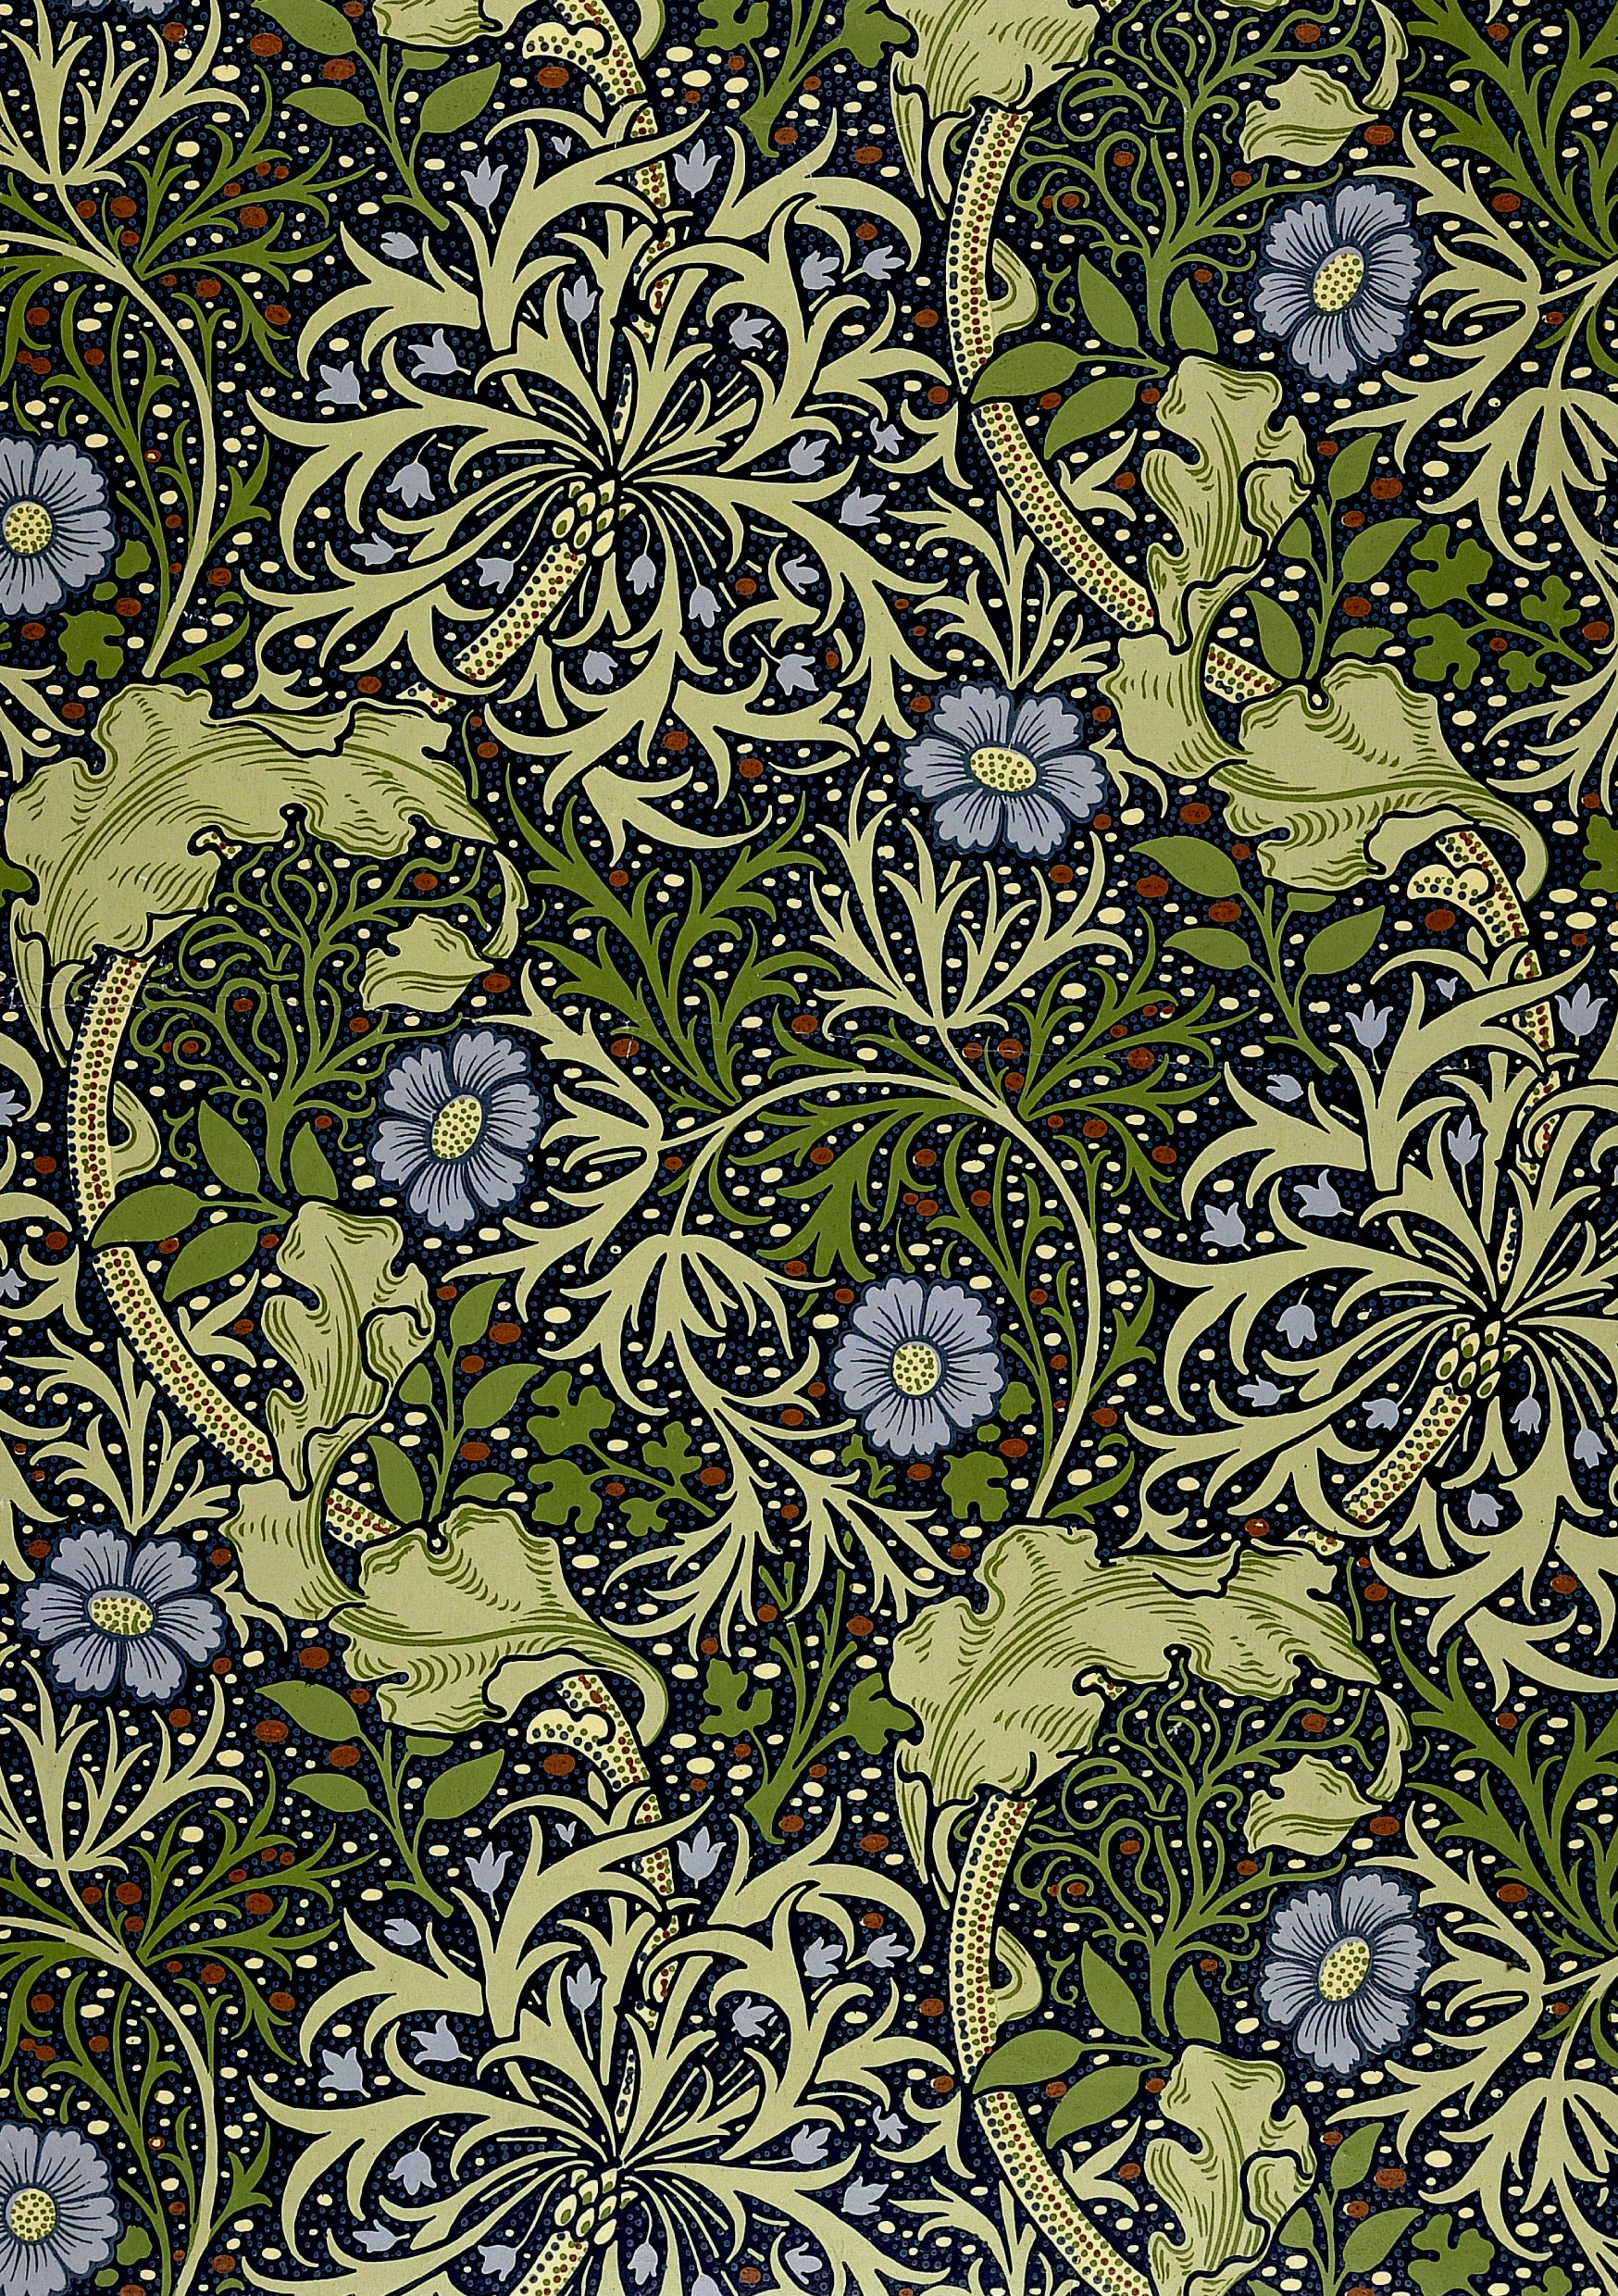 best 25 william morris wallpaper ideas on pinterest william morris tapet william morris and. Black Bedroom Furniture Sets. Home Design Ideas